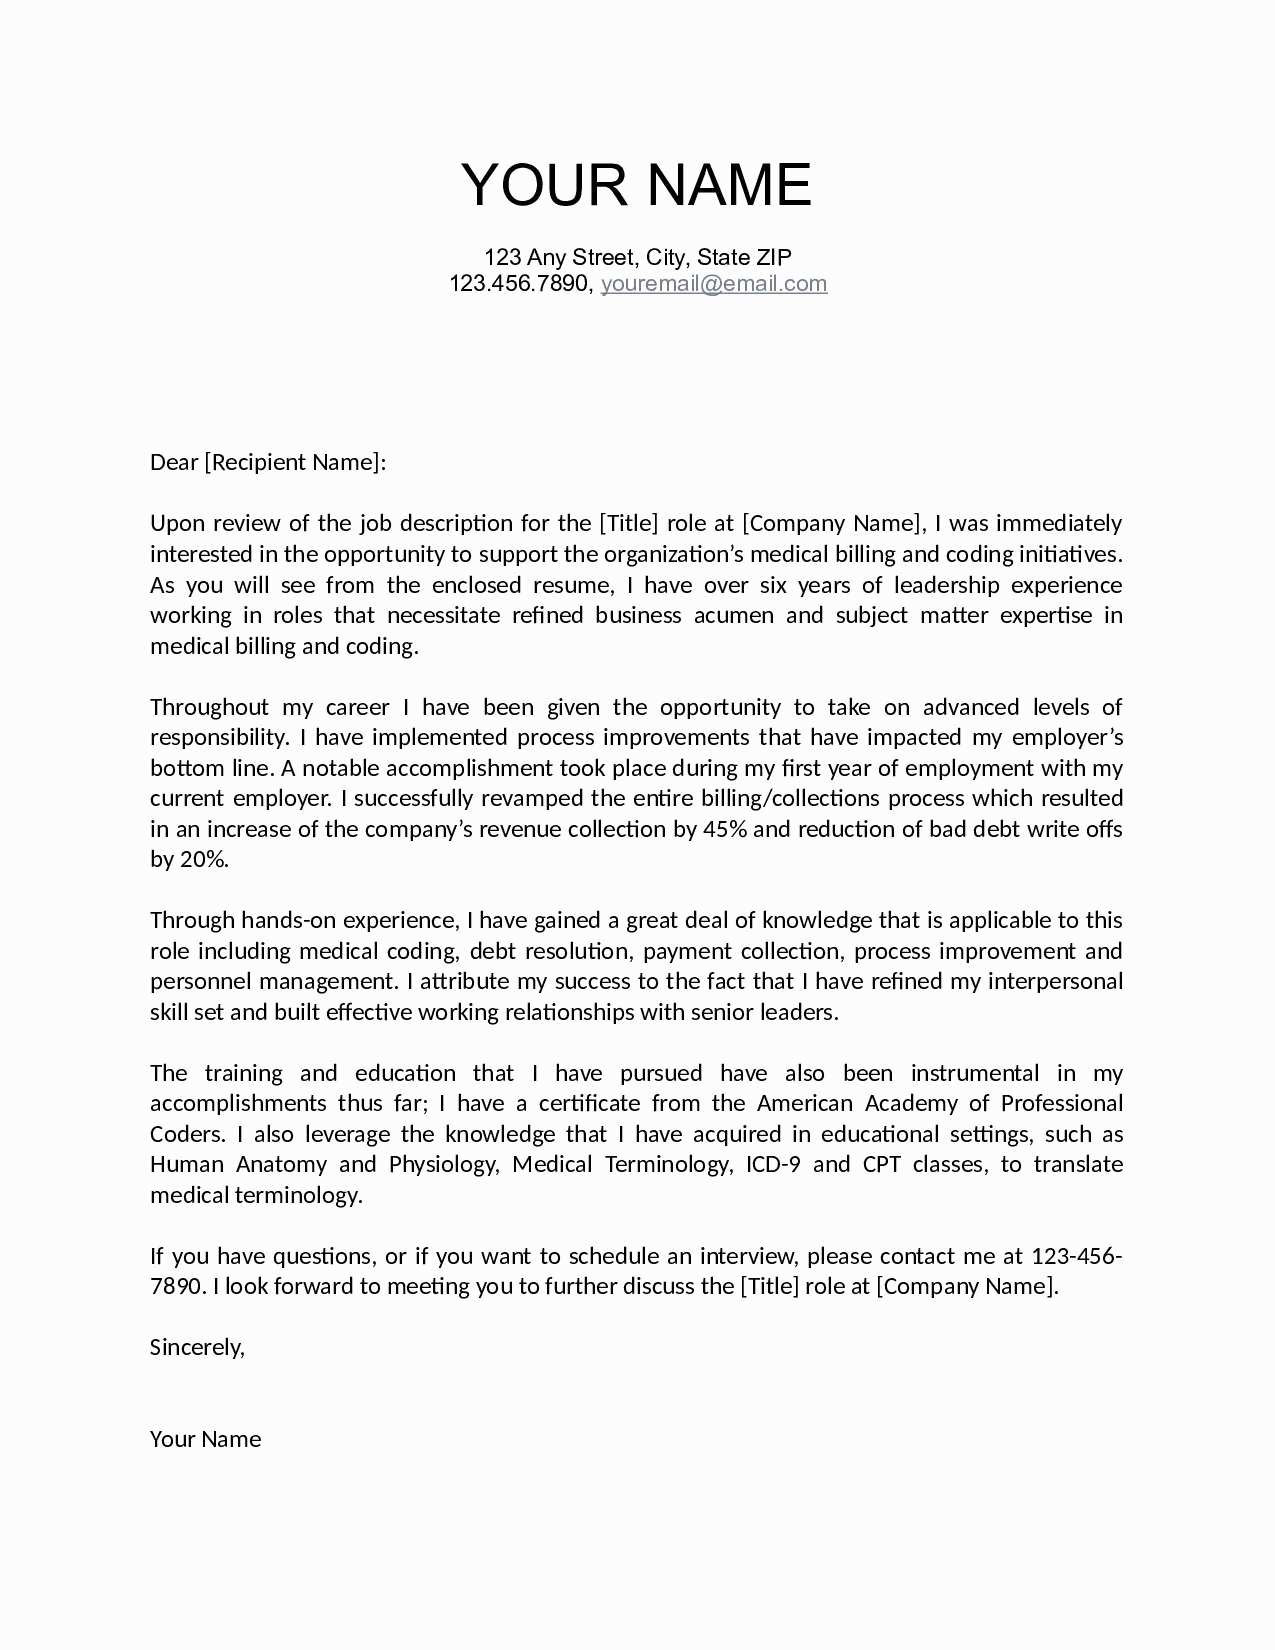 Survey Cover Letter Template - Beautiful Resume and Cover Letter Template